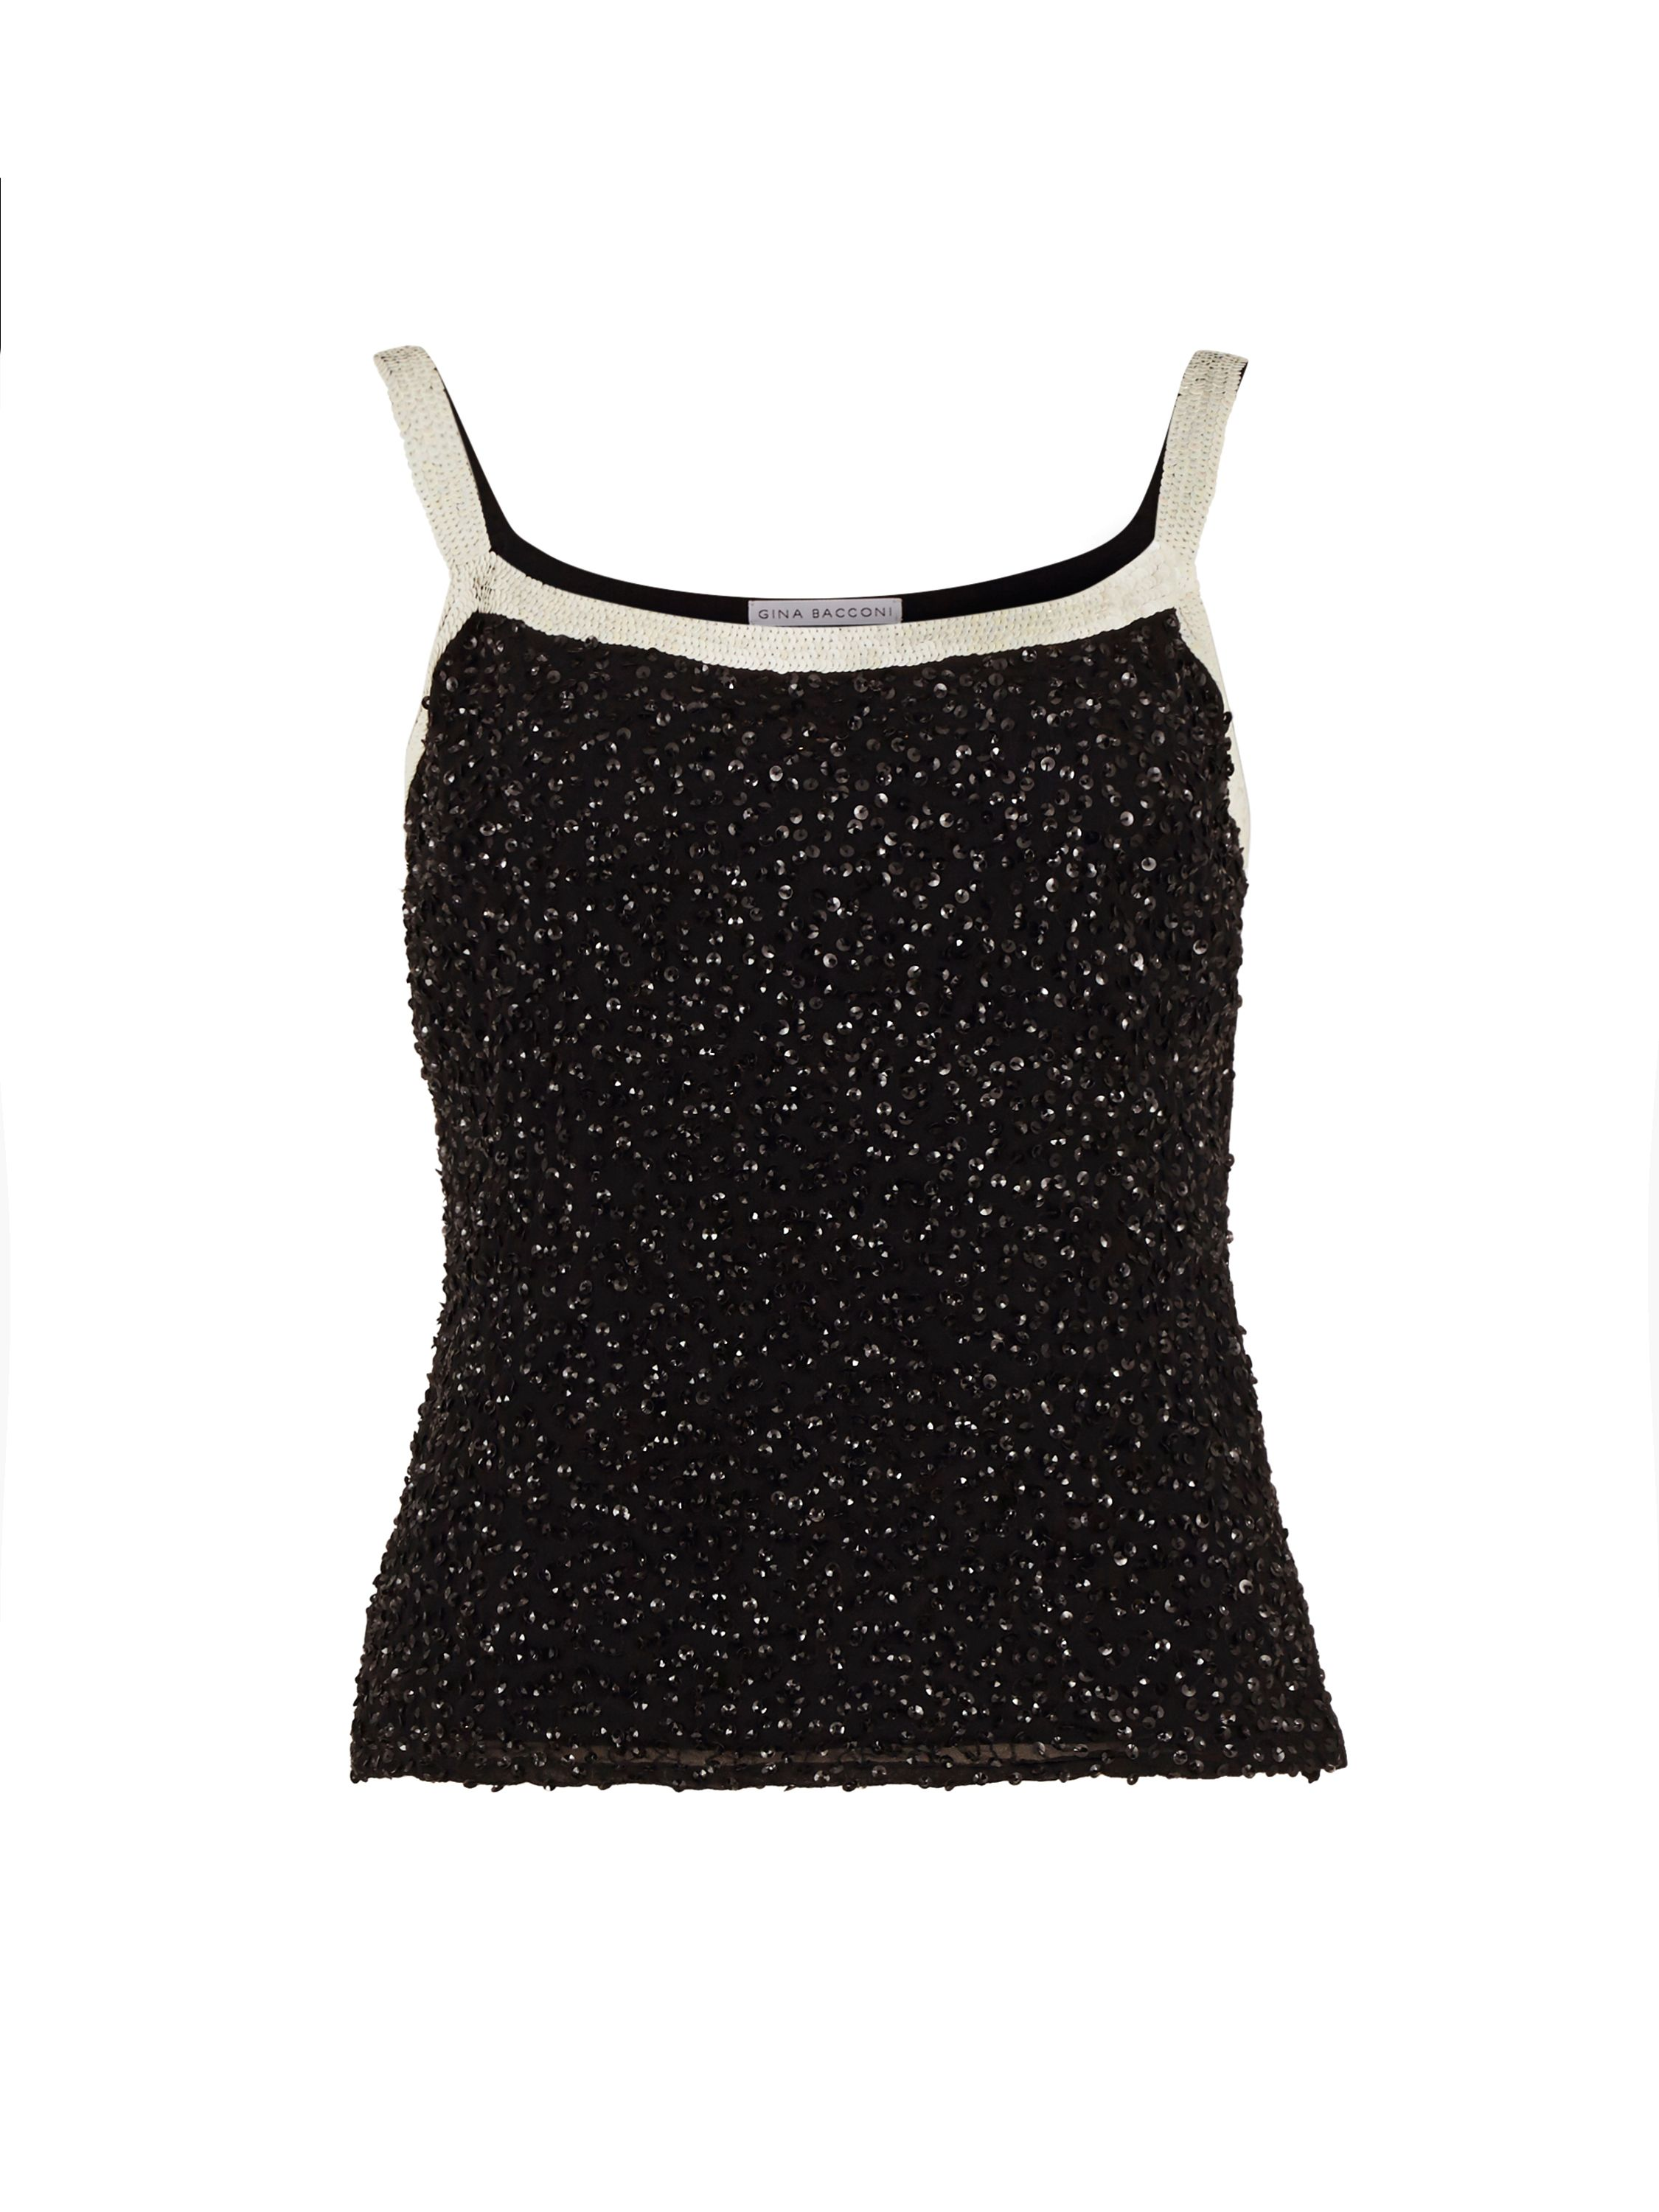 Gina Bacconi Sequin Cami With Contrast Bands, Black